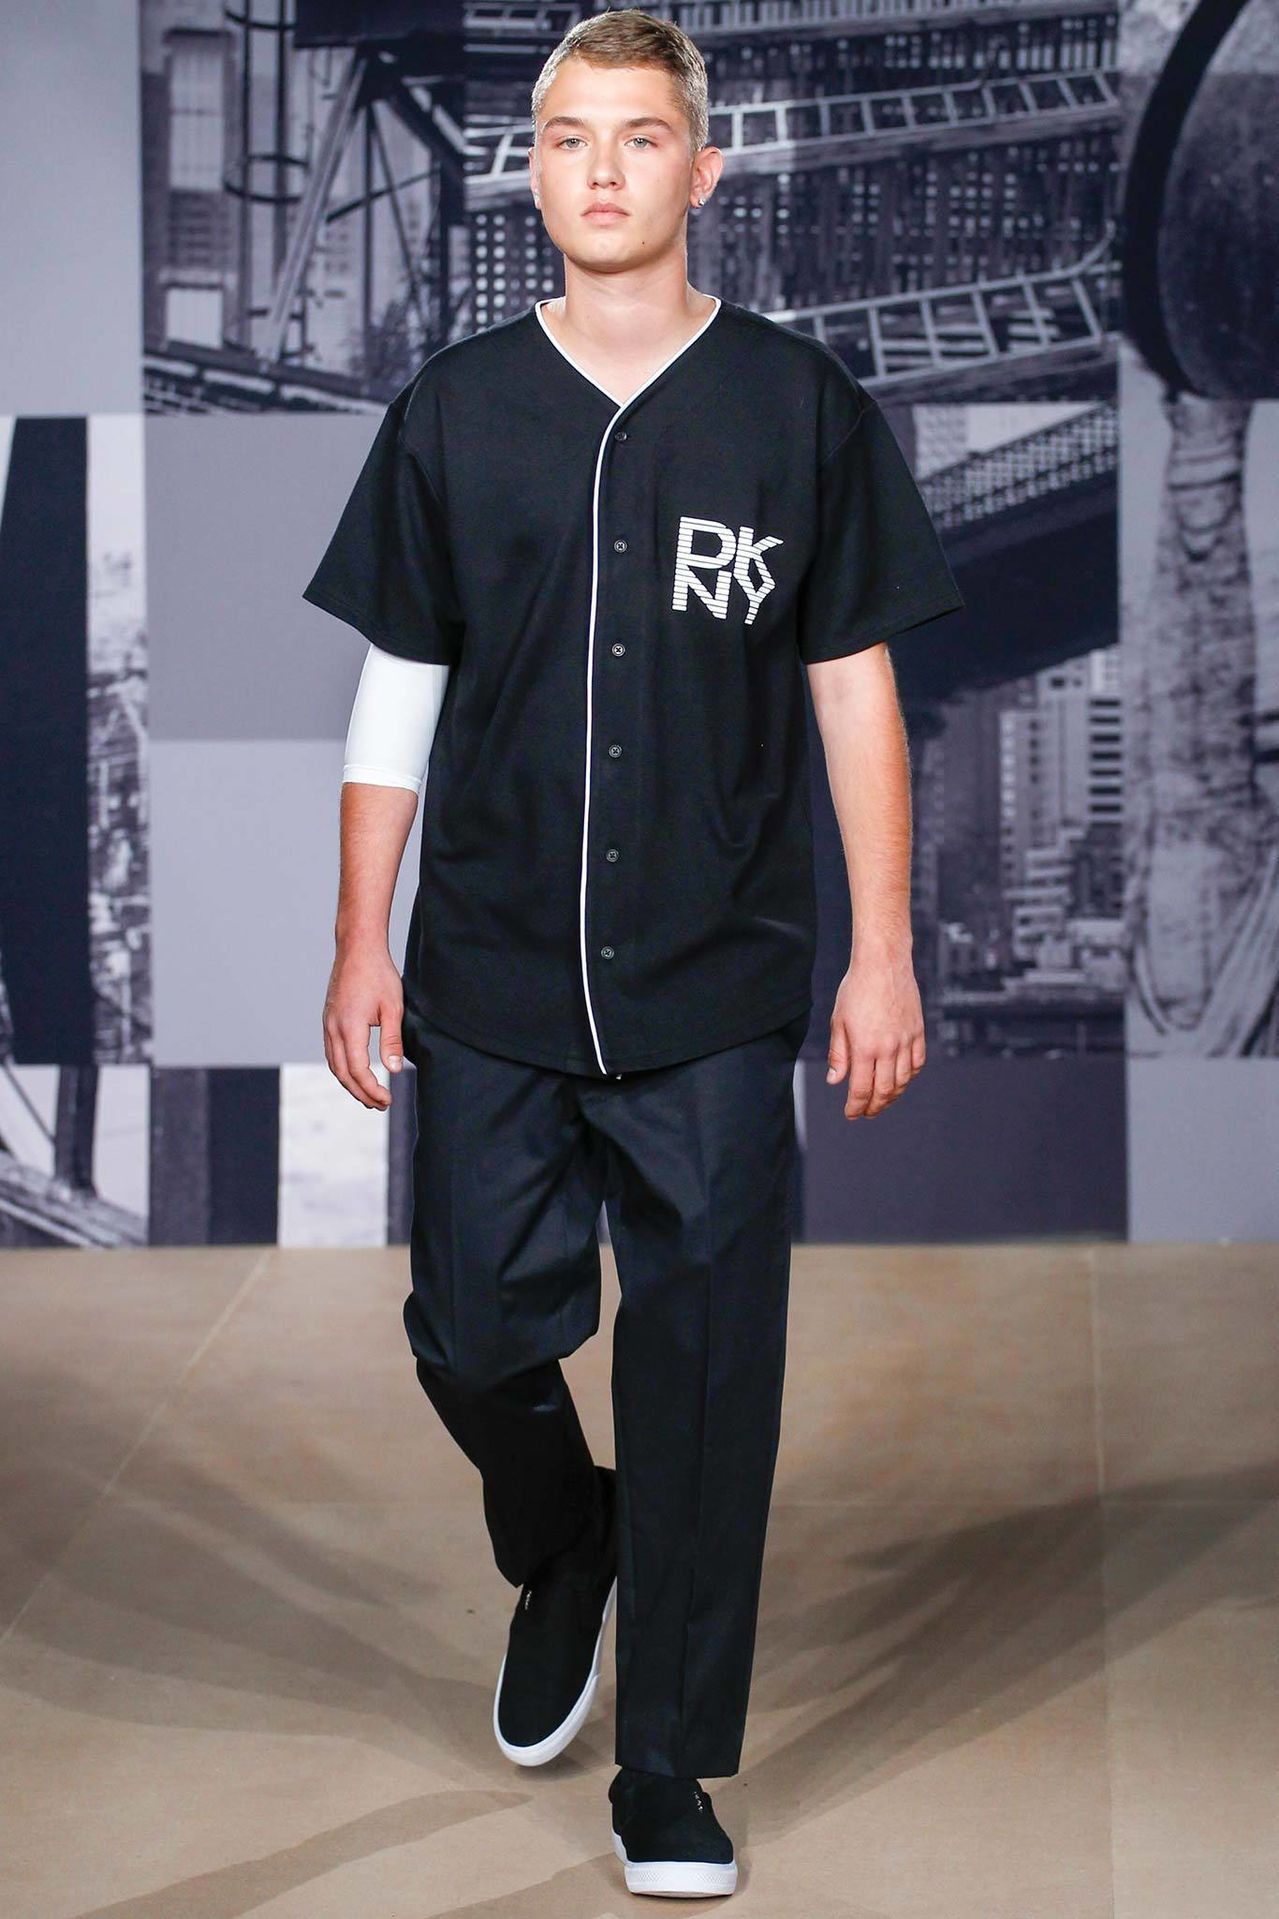 jude law�s son rafferty makes runway model debut the